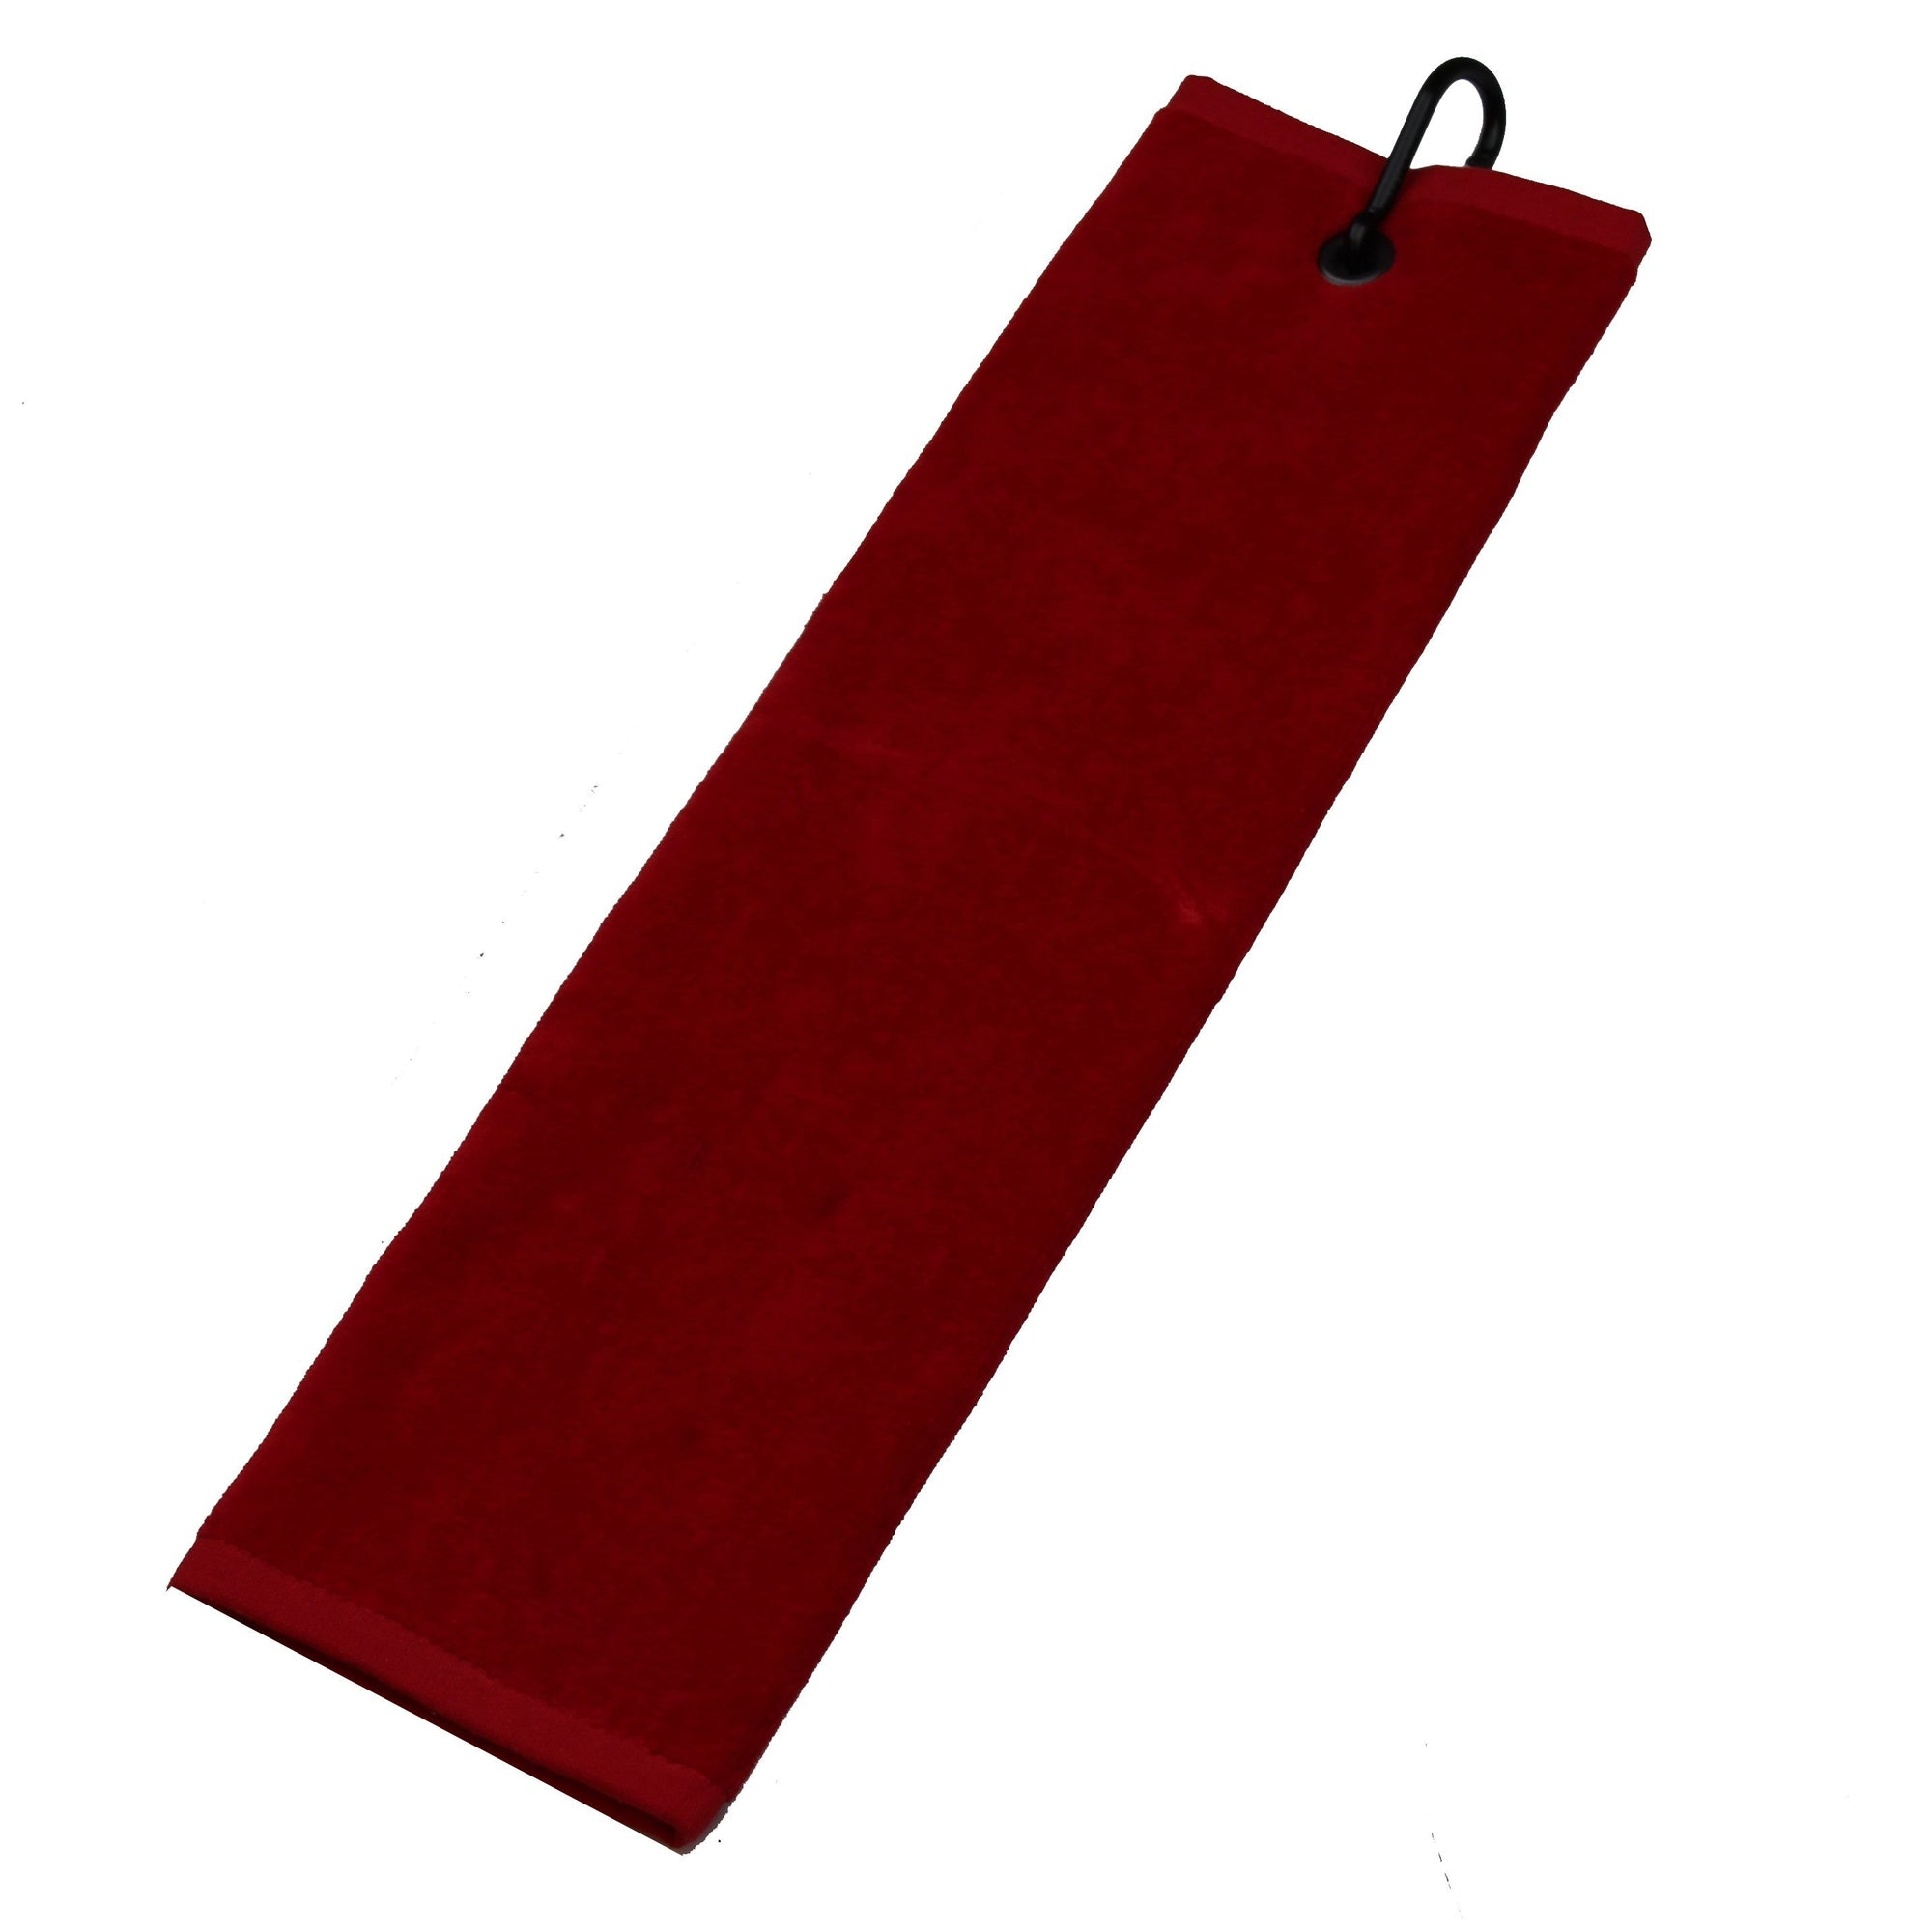 Druids Golf - Corporate Velour Tri-Fold Towel (Red)